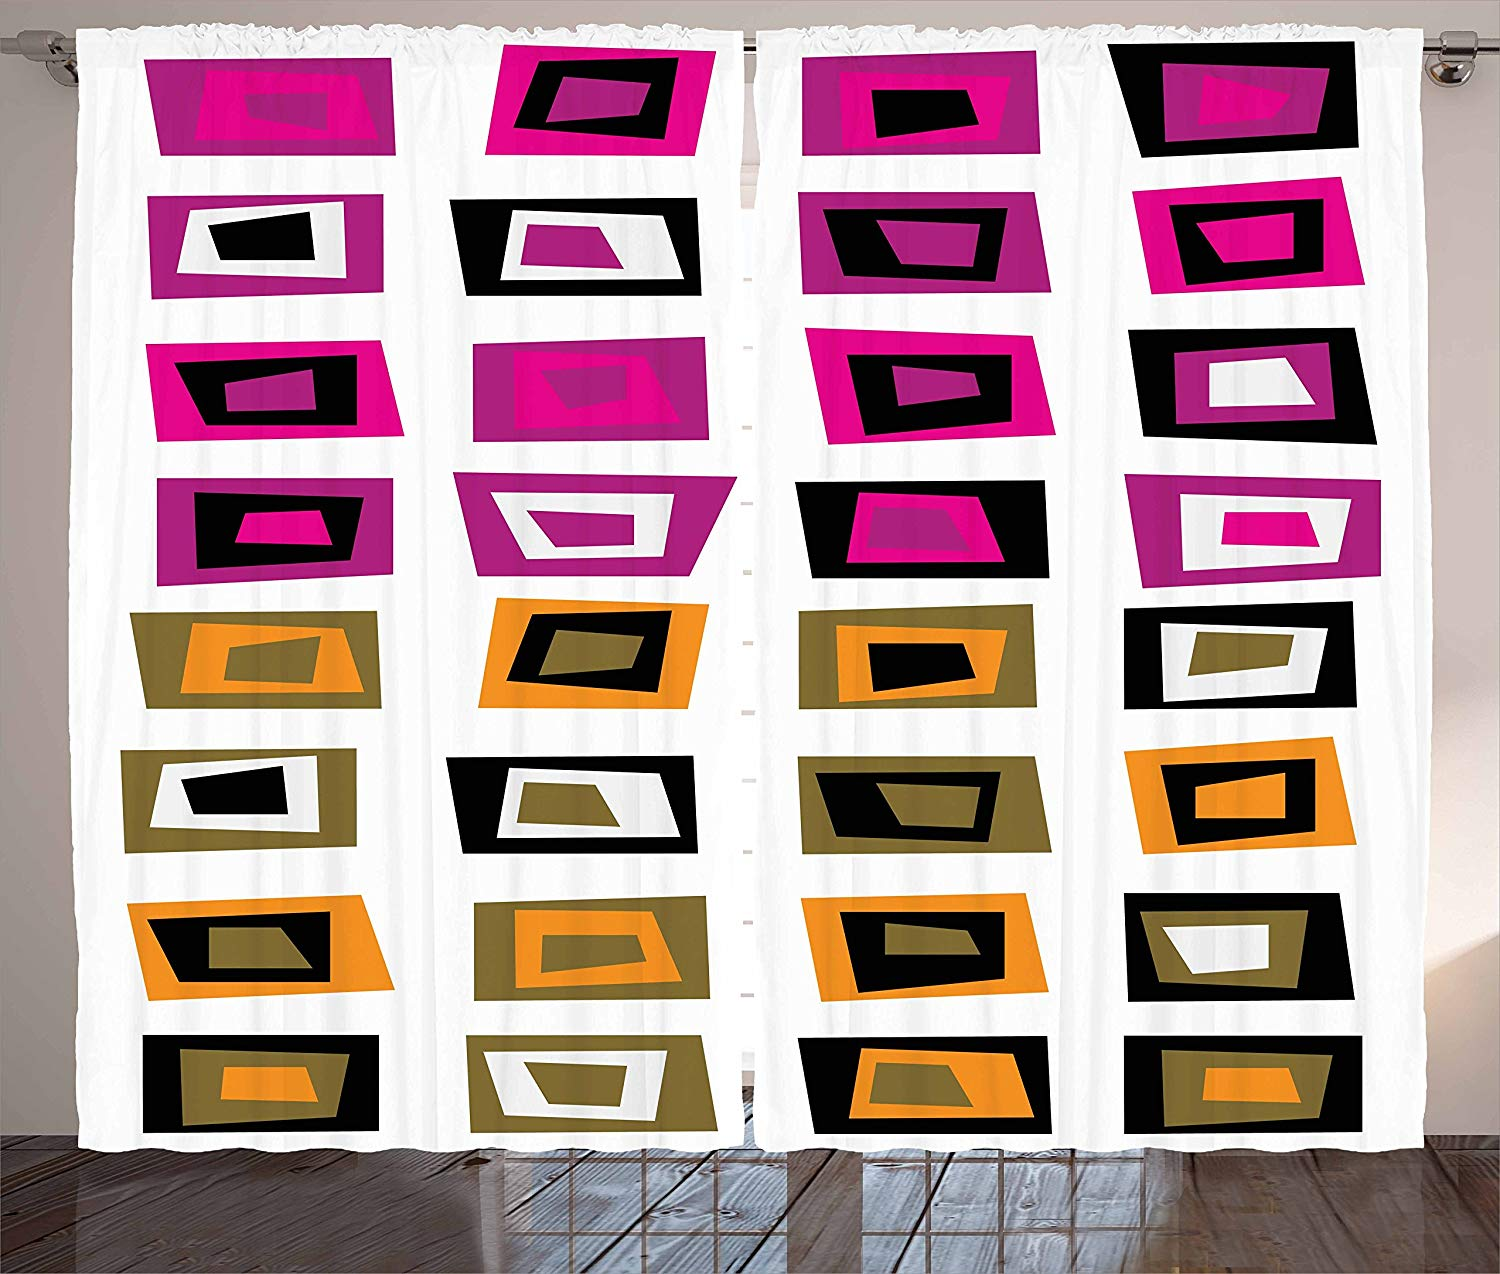 Retro Curtains Pattern With Abstract Squares With Inner Shapes In Contrast Colors Sixties Style Living Room Bedroom Window